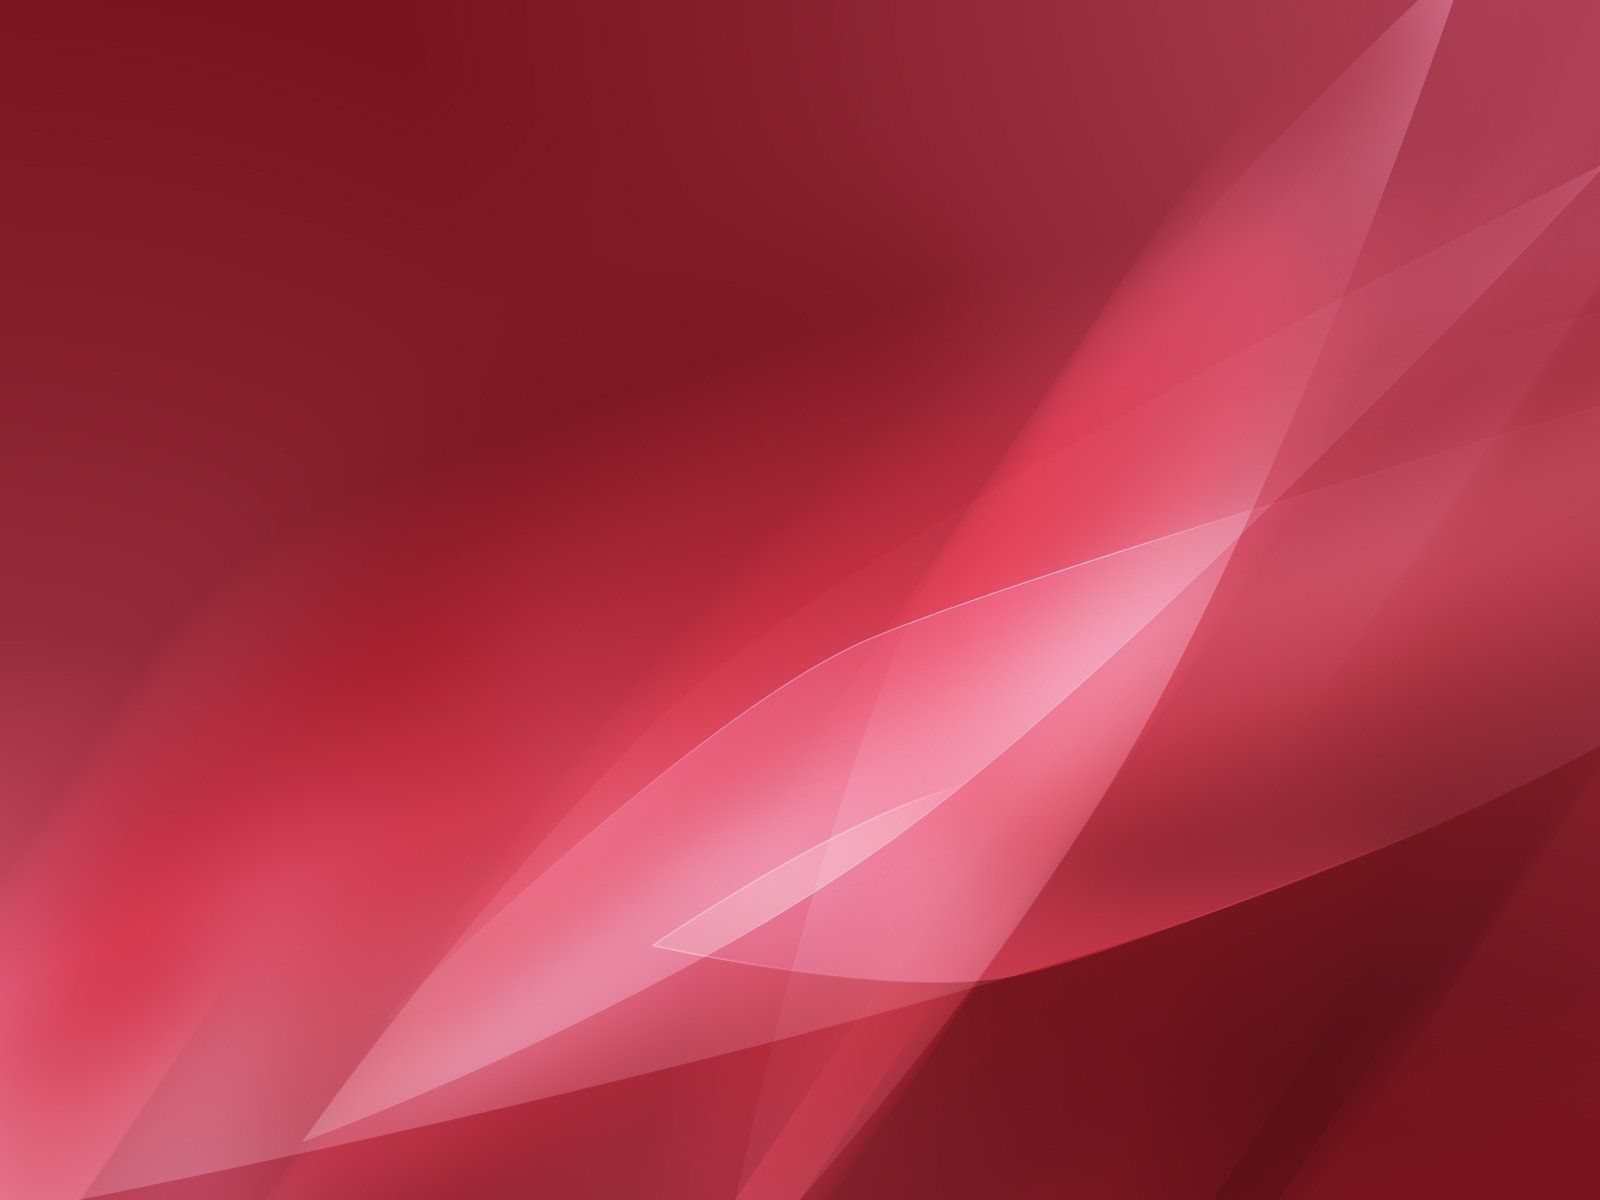 Different Shades Of Red red |  background in different shades of red color' - abstract